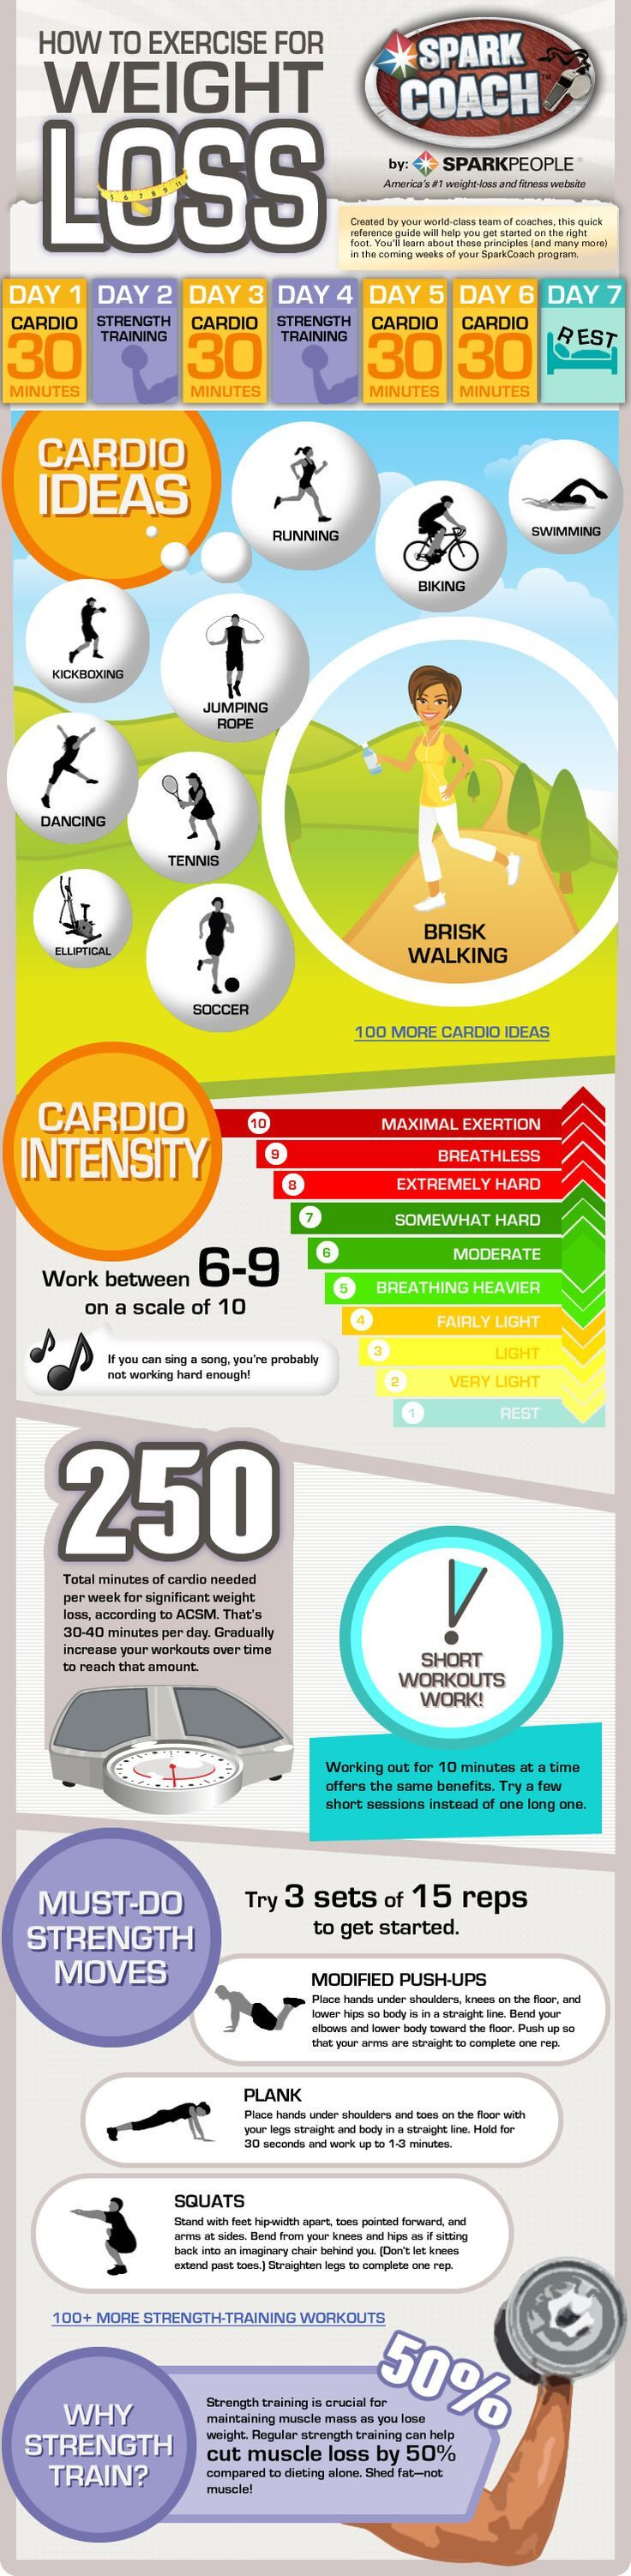 How to exercise for weight loss (Infographic) ---------- Bonus: 5 Best Exercises For Weight Loss (Link)